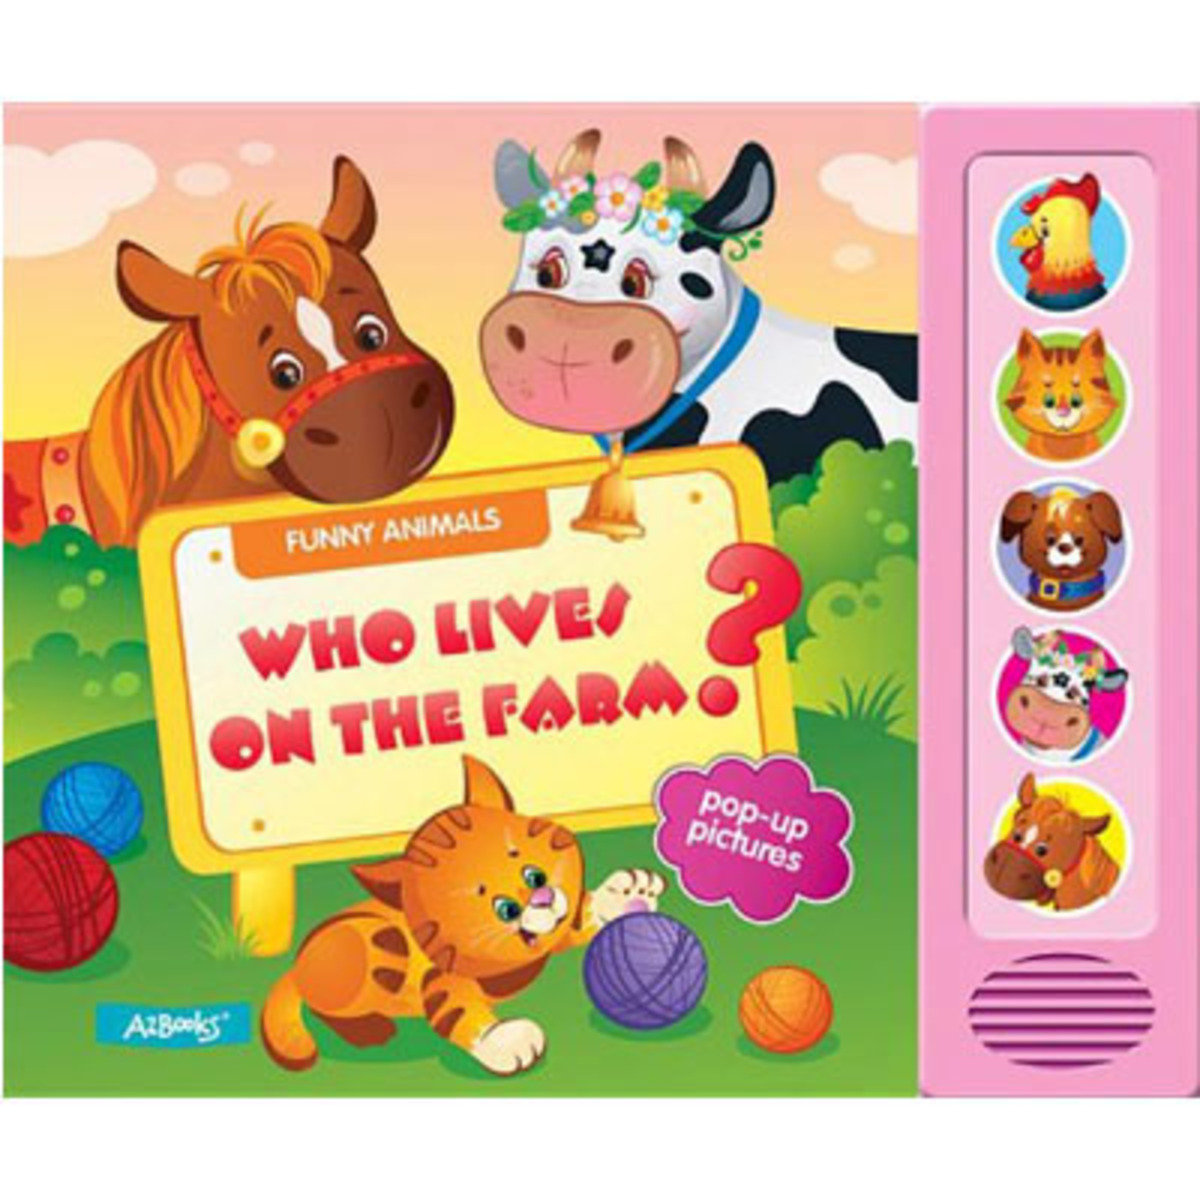 Who Lives on a Farm? (Funny Animals) 9781618890474